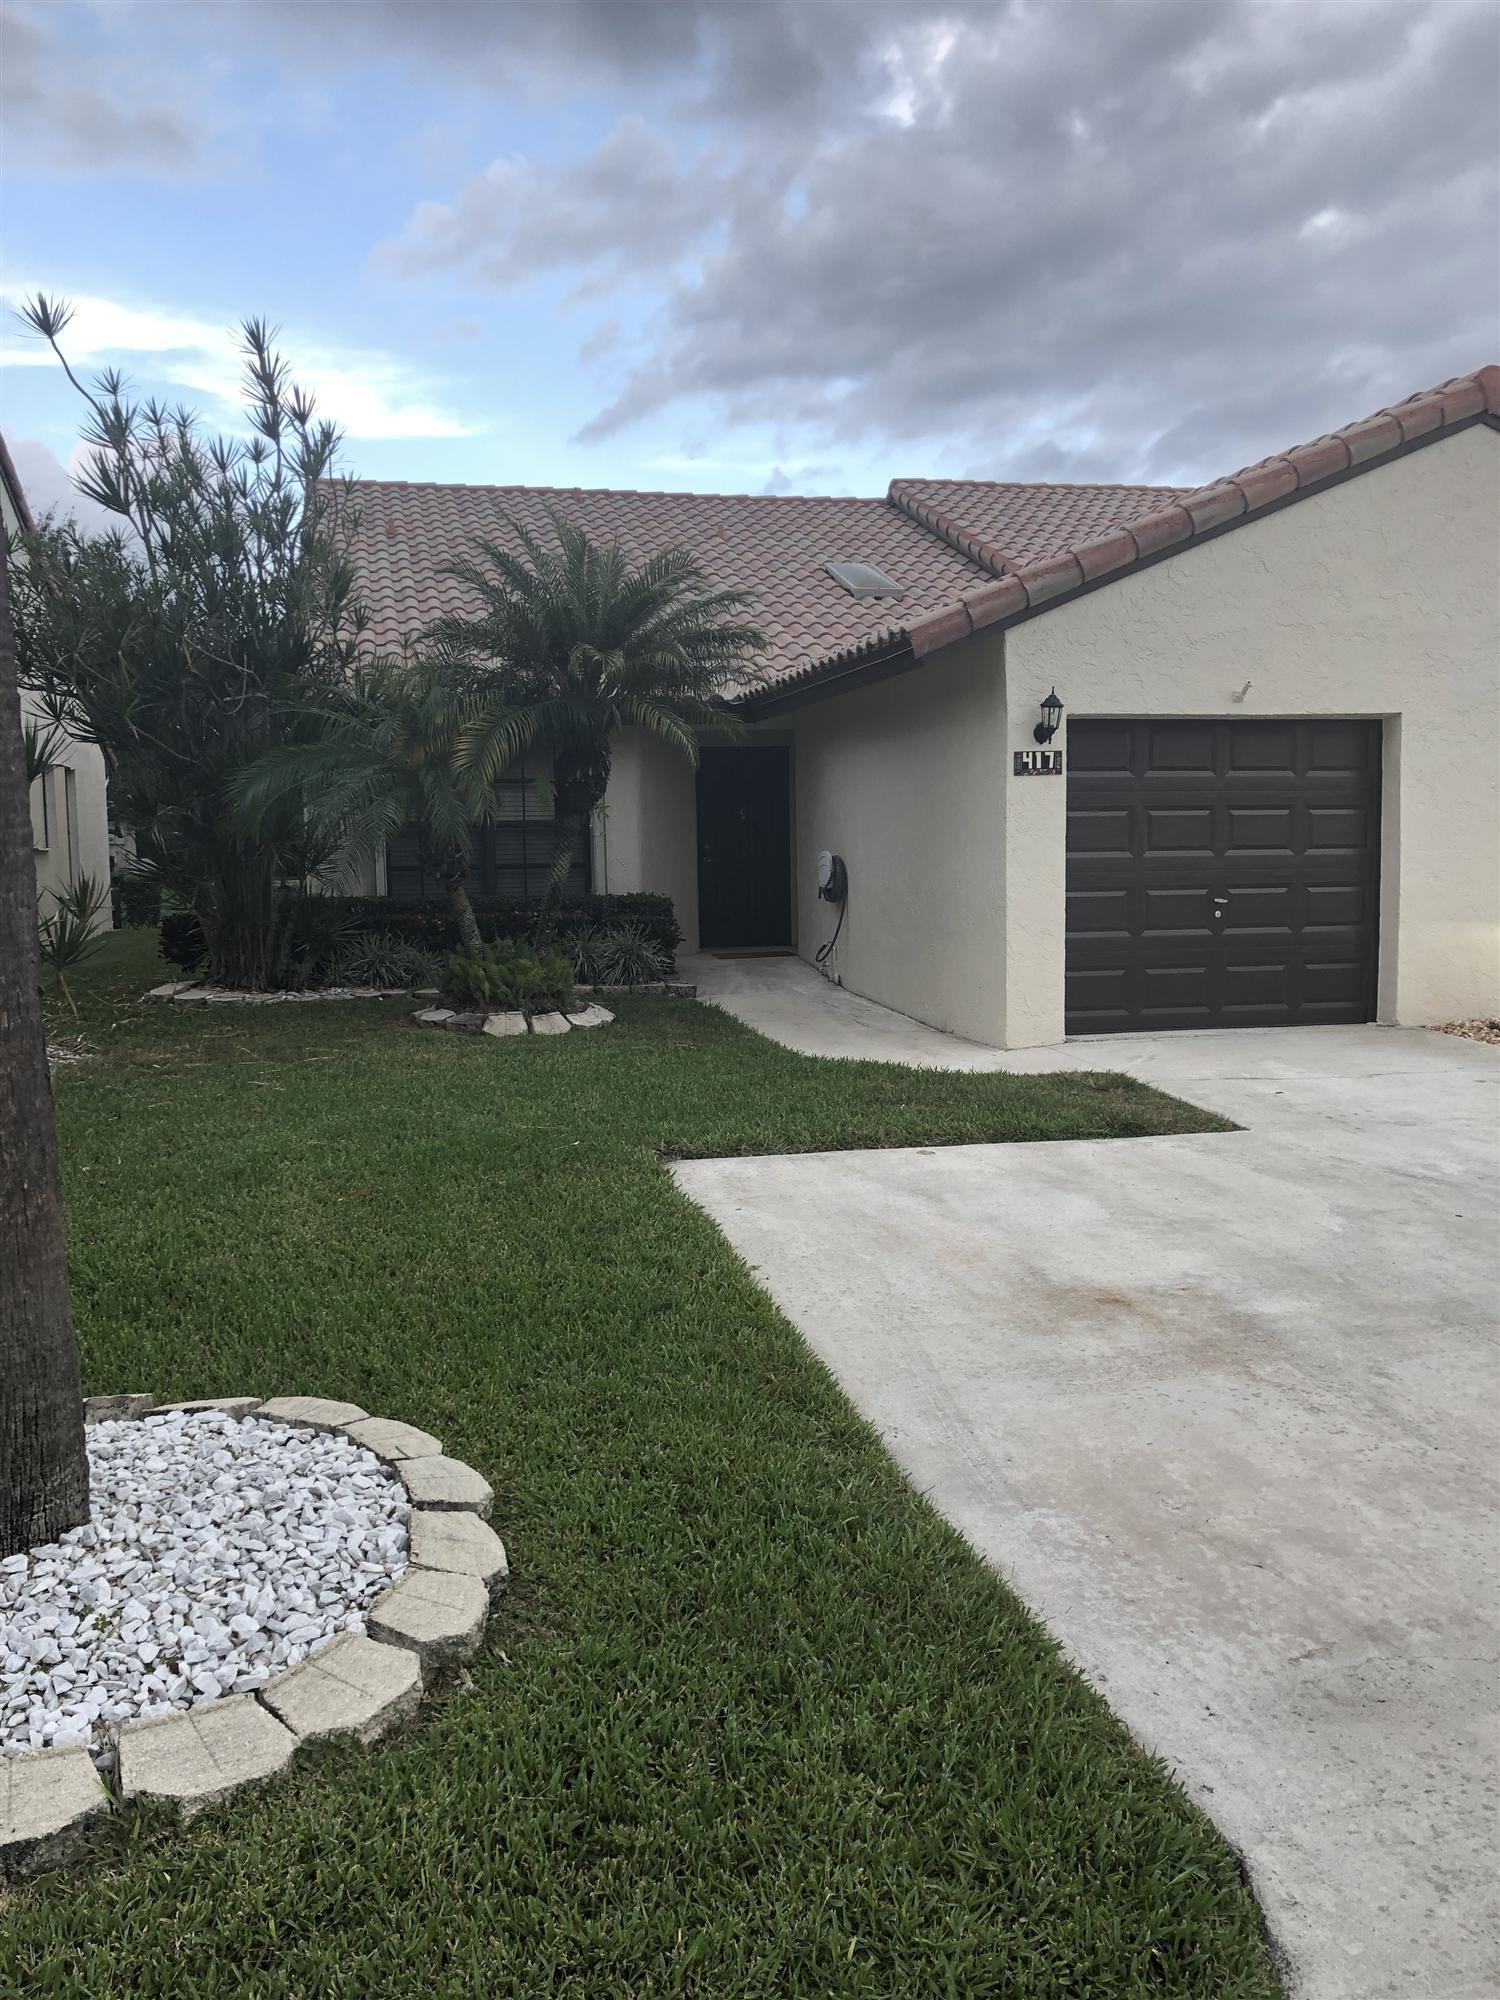 417 Buttonwood Place 417 Boca Raton, FL 33431 small photo 1